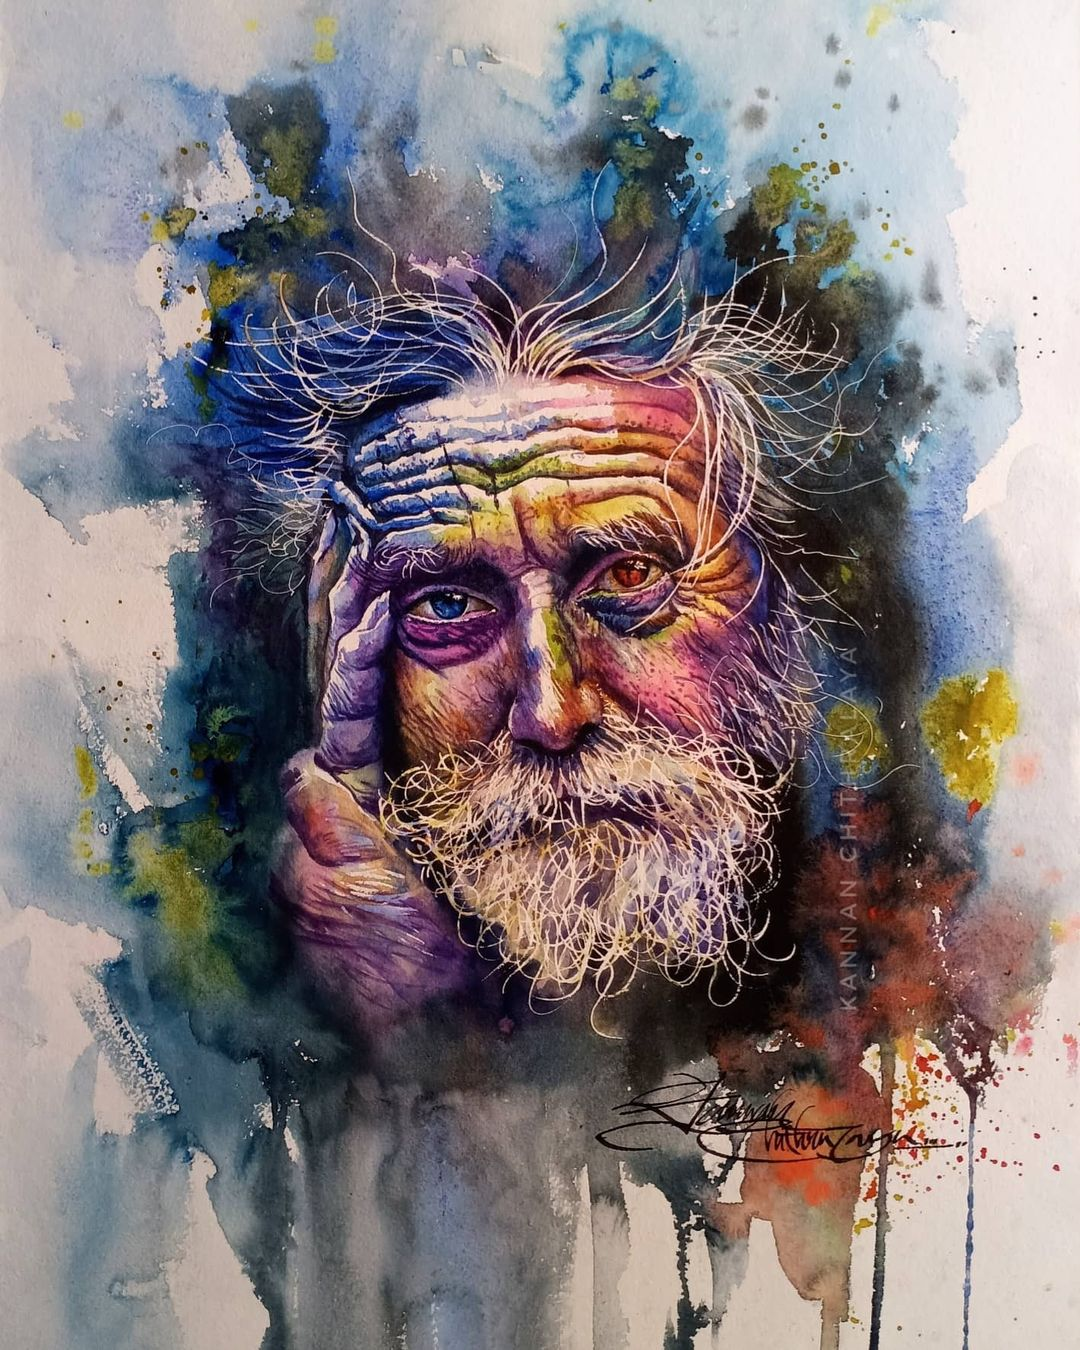 watercolor painting fiery man by kannan chitralaya